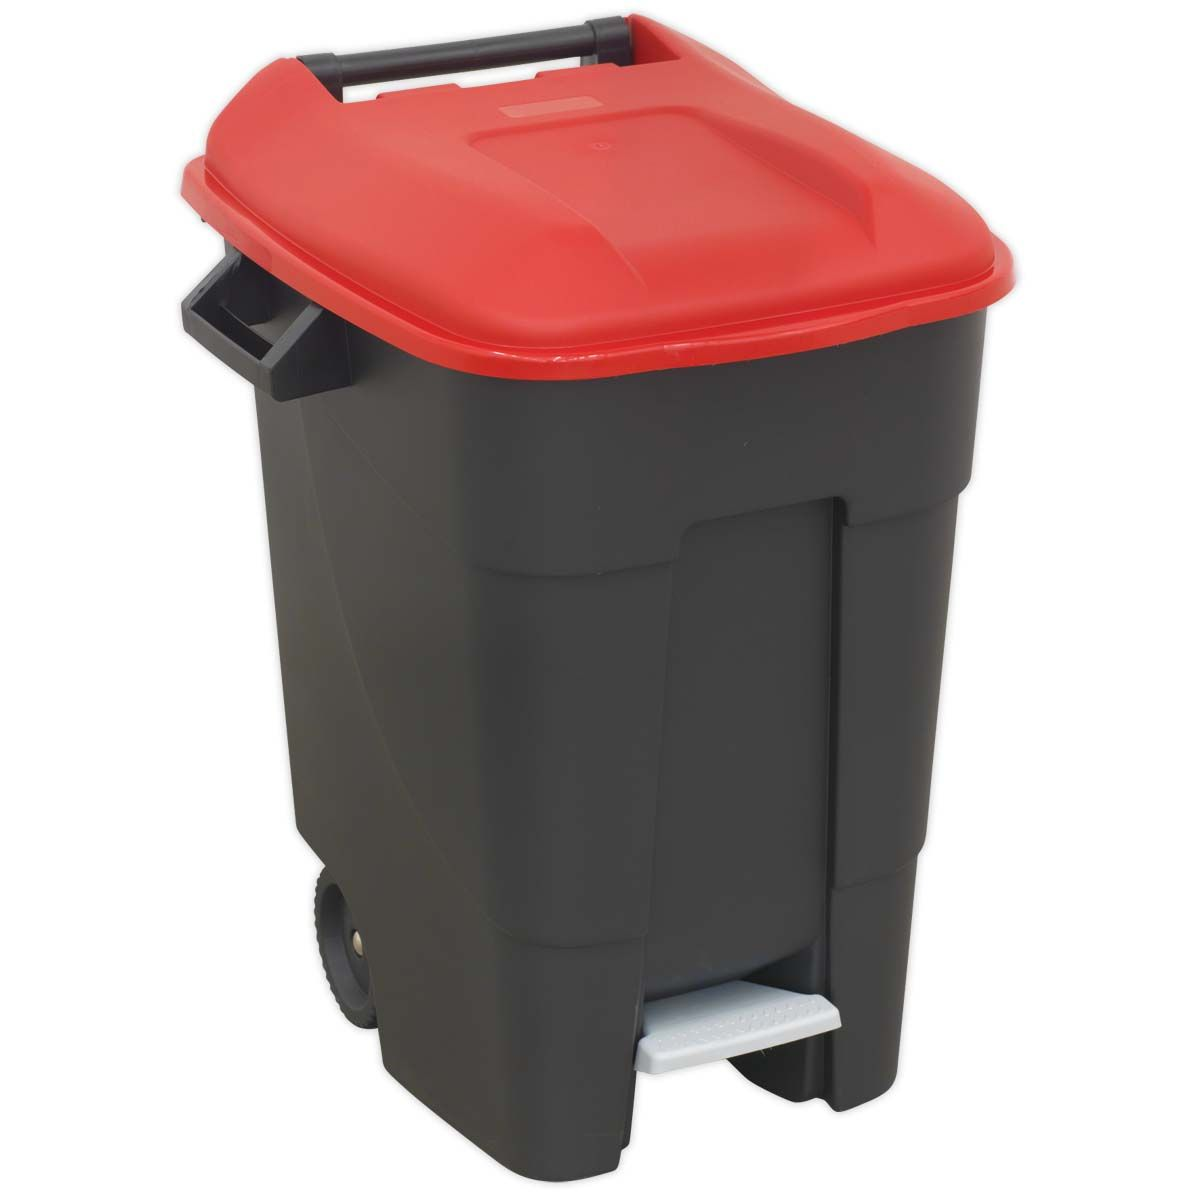 Sealey Refuse/Wheelie Bin with Foot Pedal 100L - Red